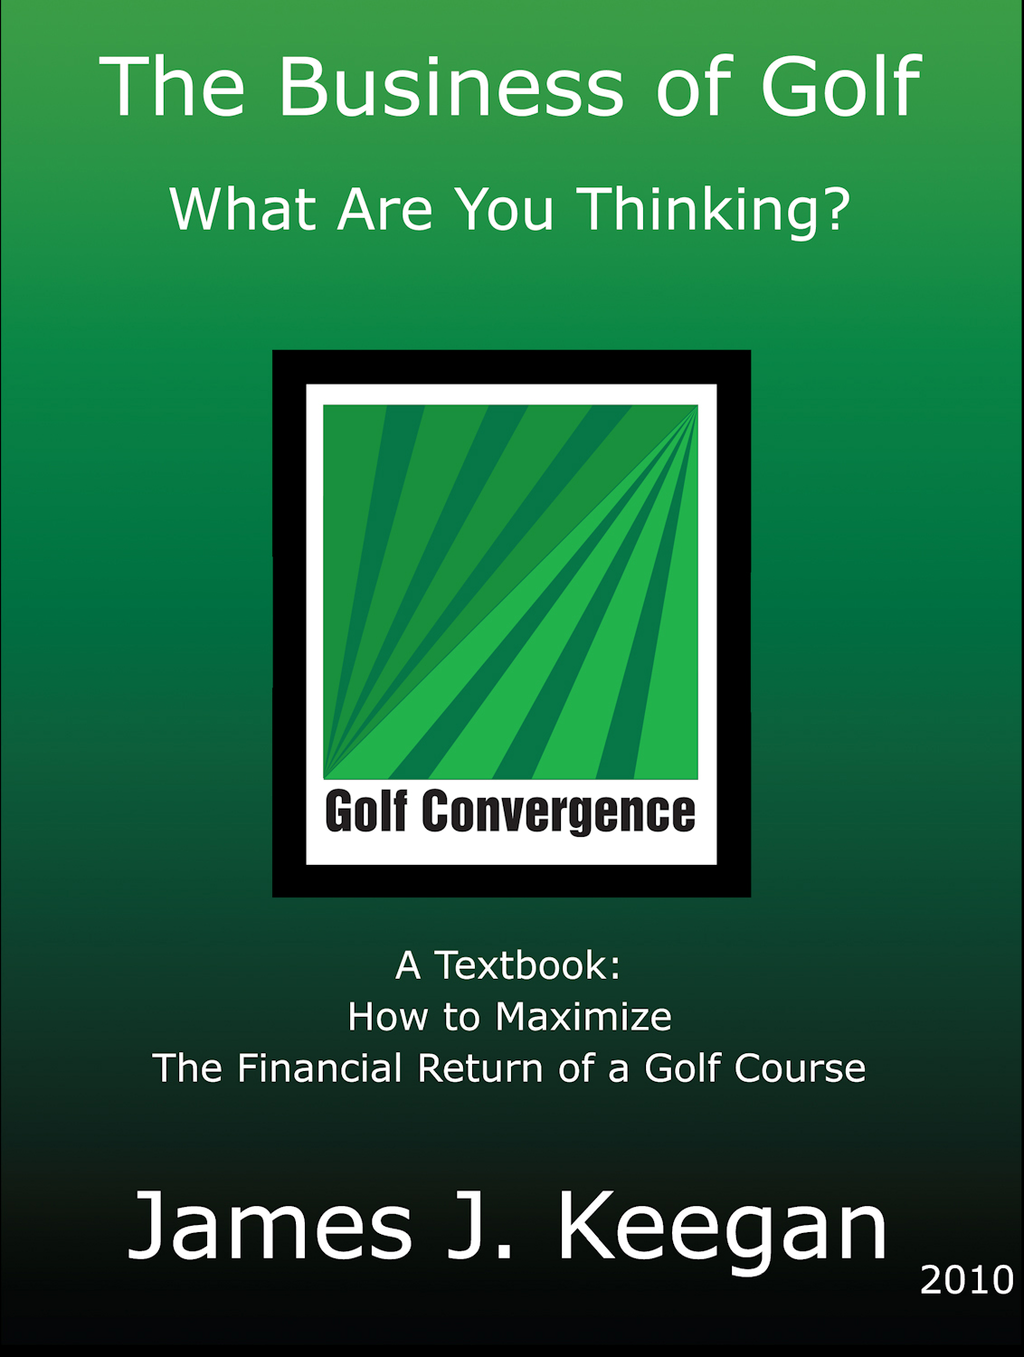 Business of Golf-What Are You Thinking: How to Maximize the Financial Return of a Golf Course